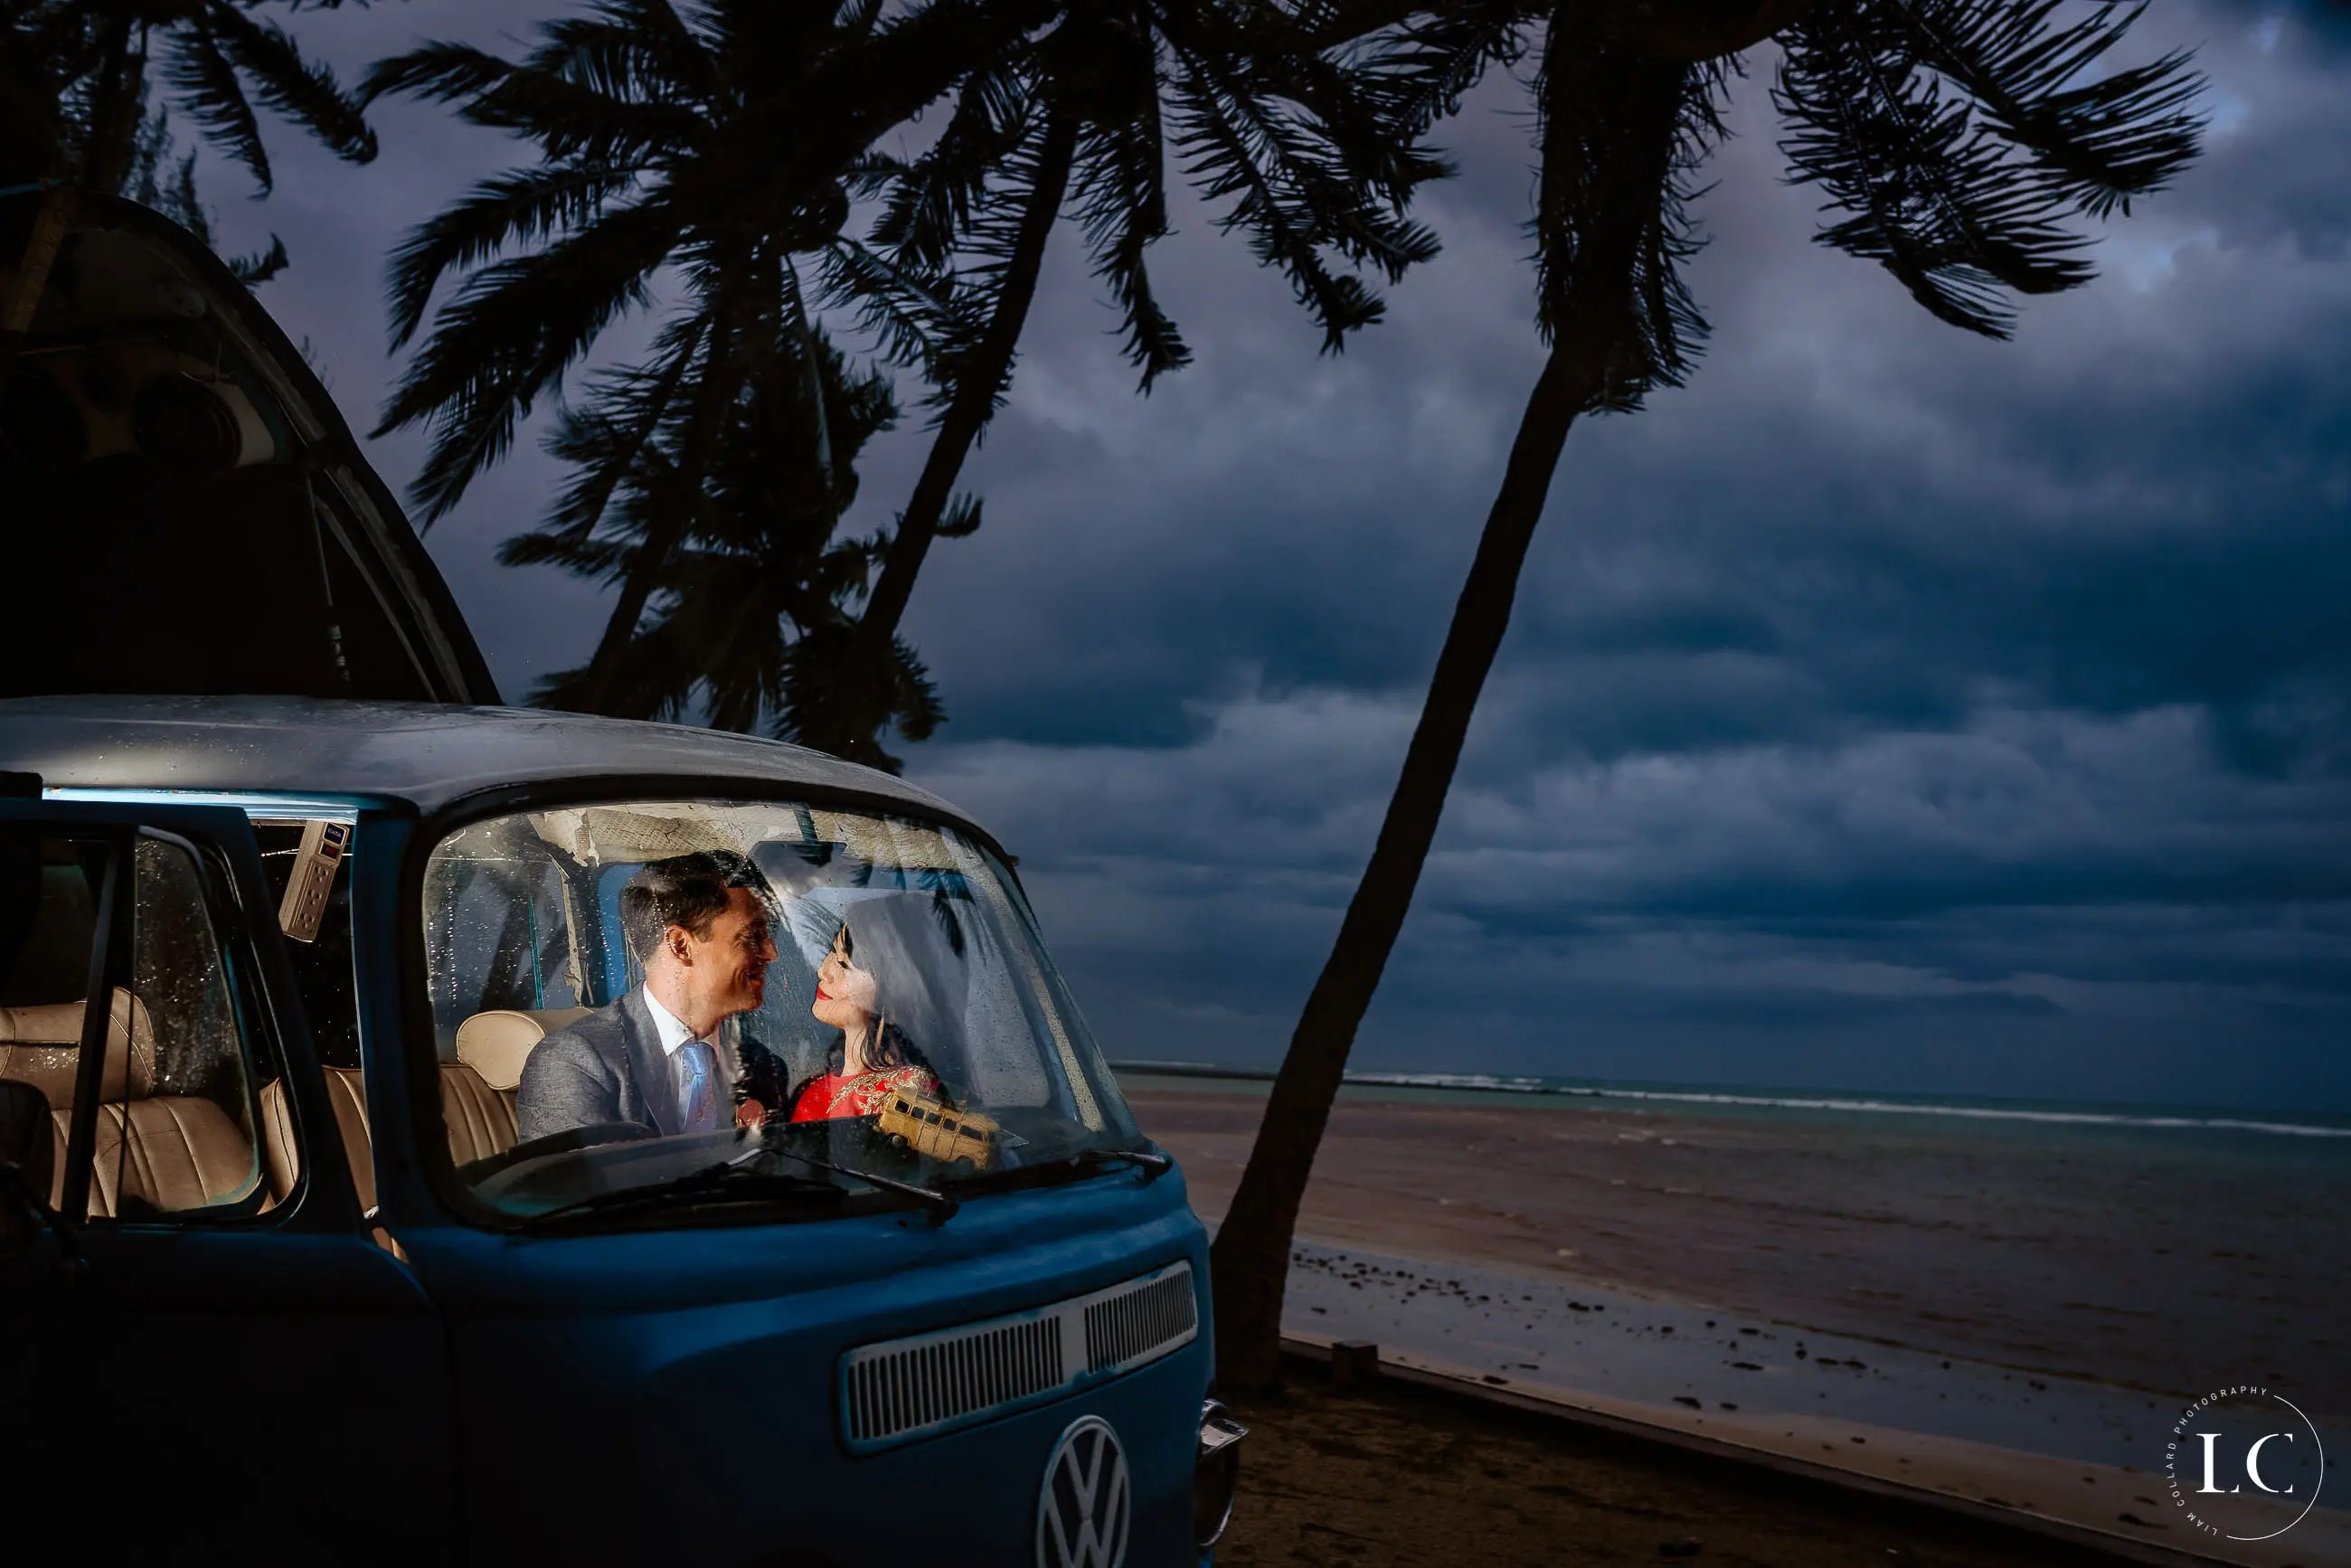 bride and groom in car by the beach